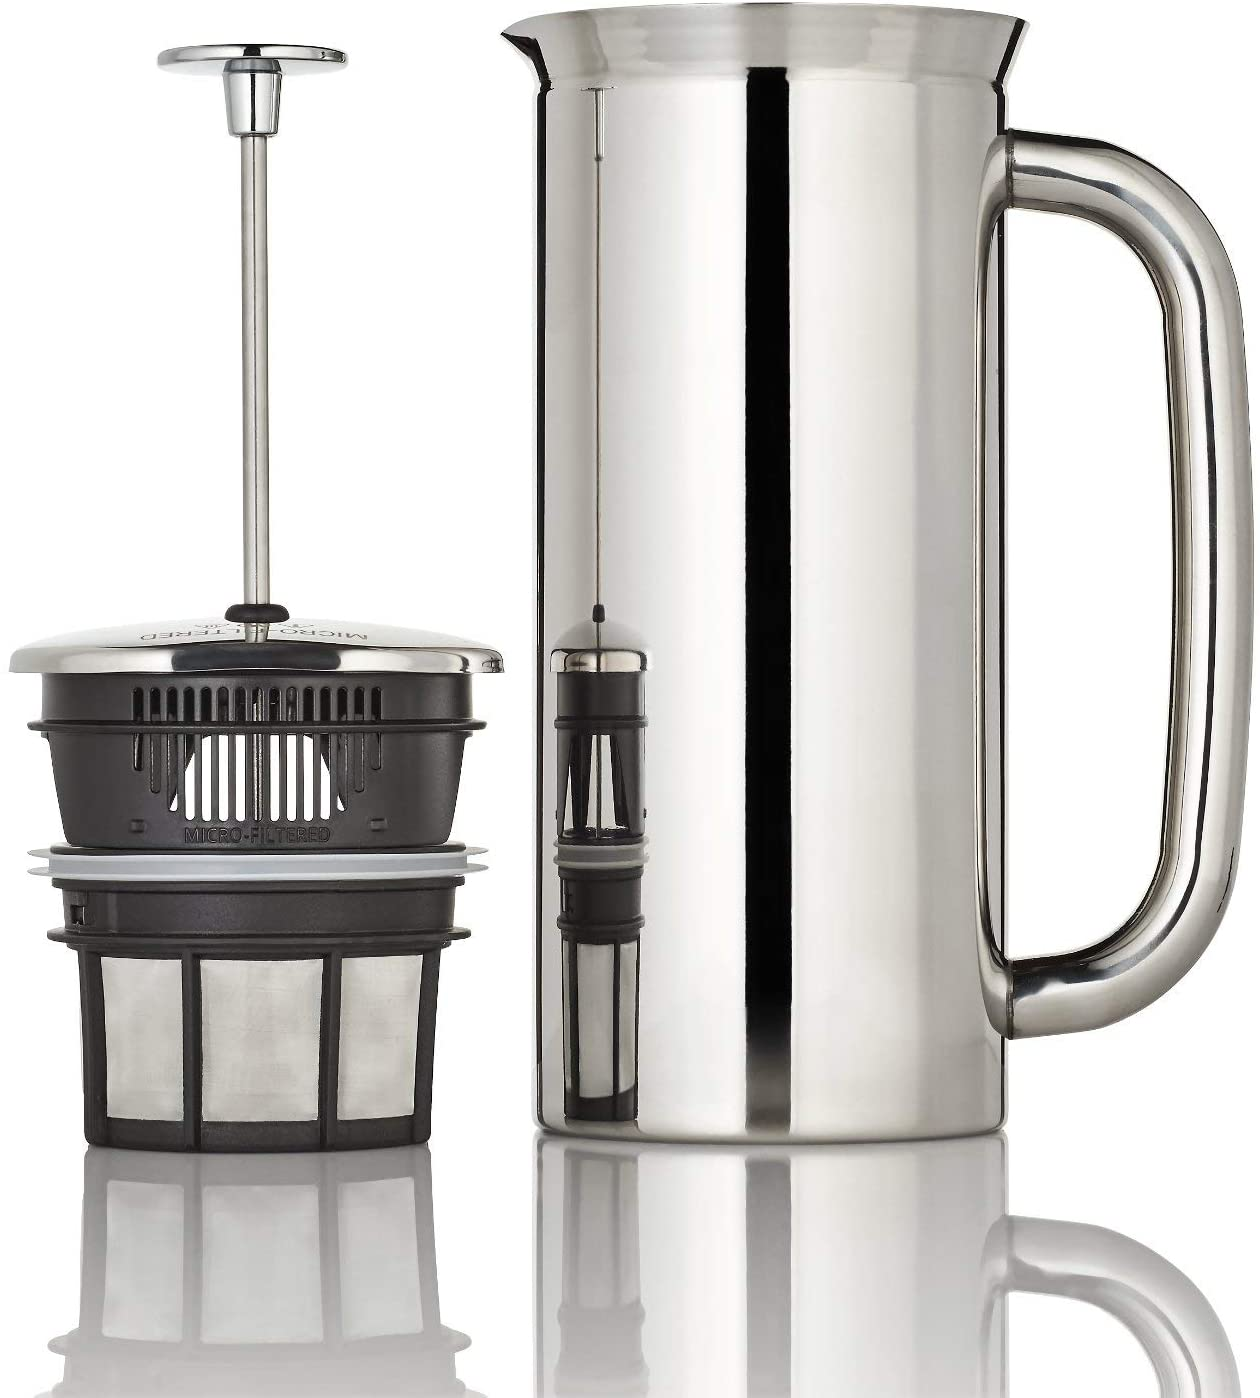 ESPRO P7 Double Walled Stainless Steel Vacuum Insulated Coffee French Press, 32 Ounce, Polished Stainless Steel